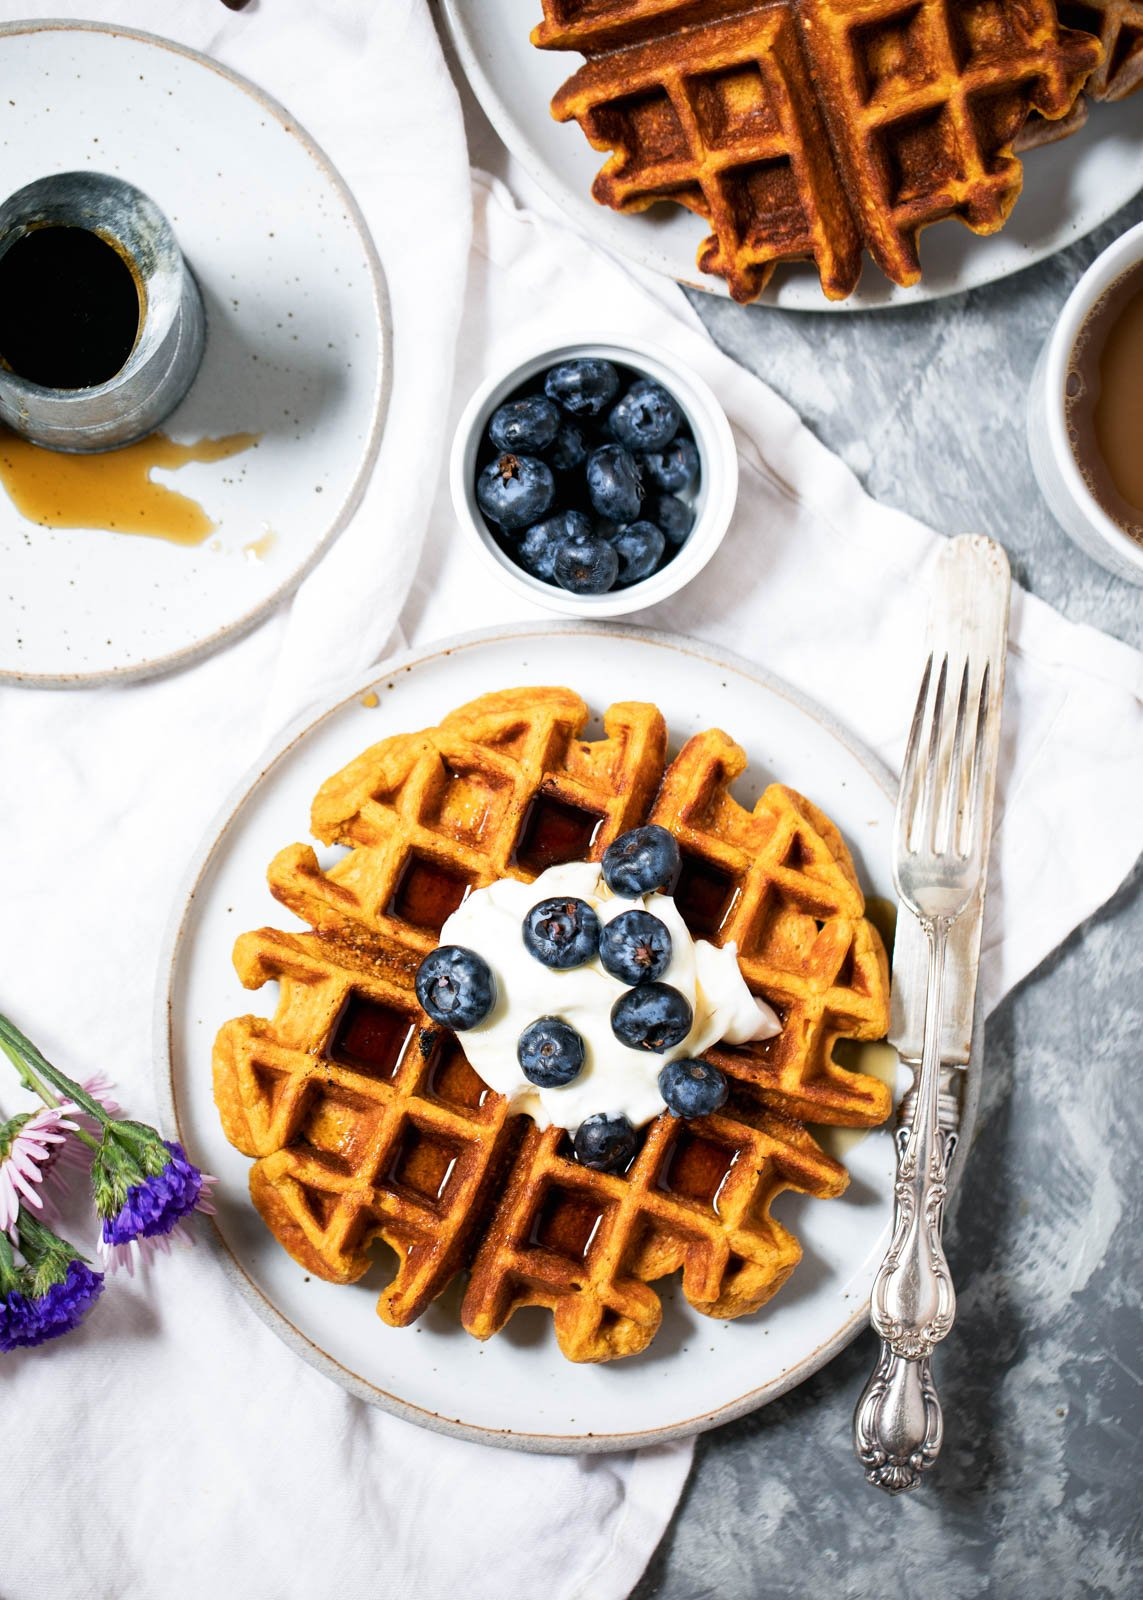 maple sweet potato waffle on a plate topped with blueberries